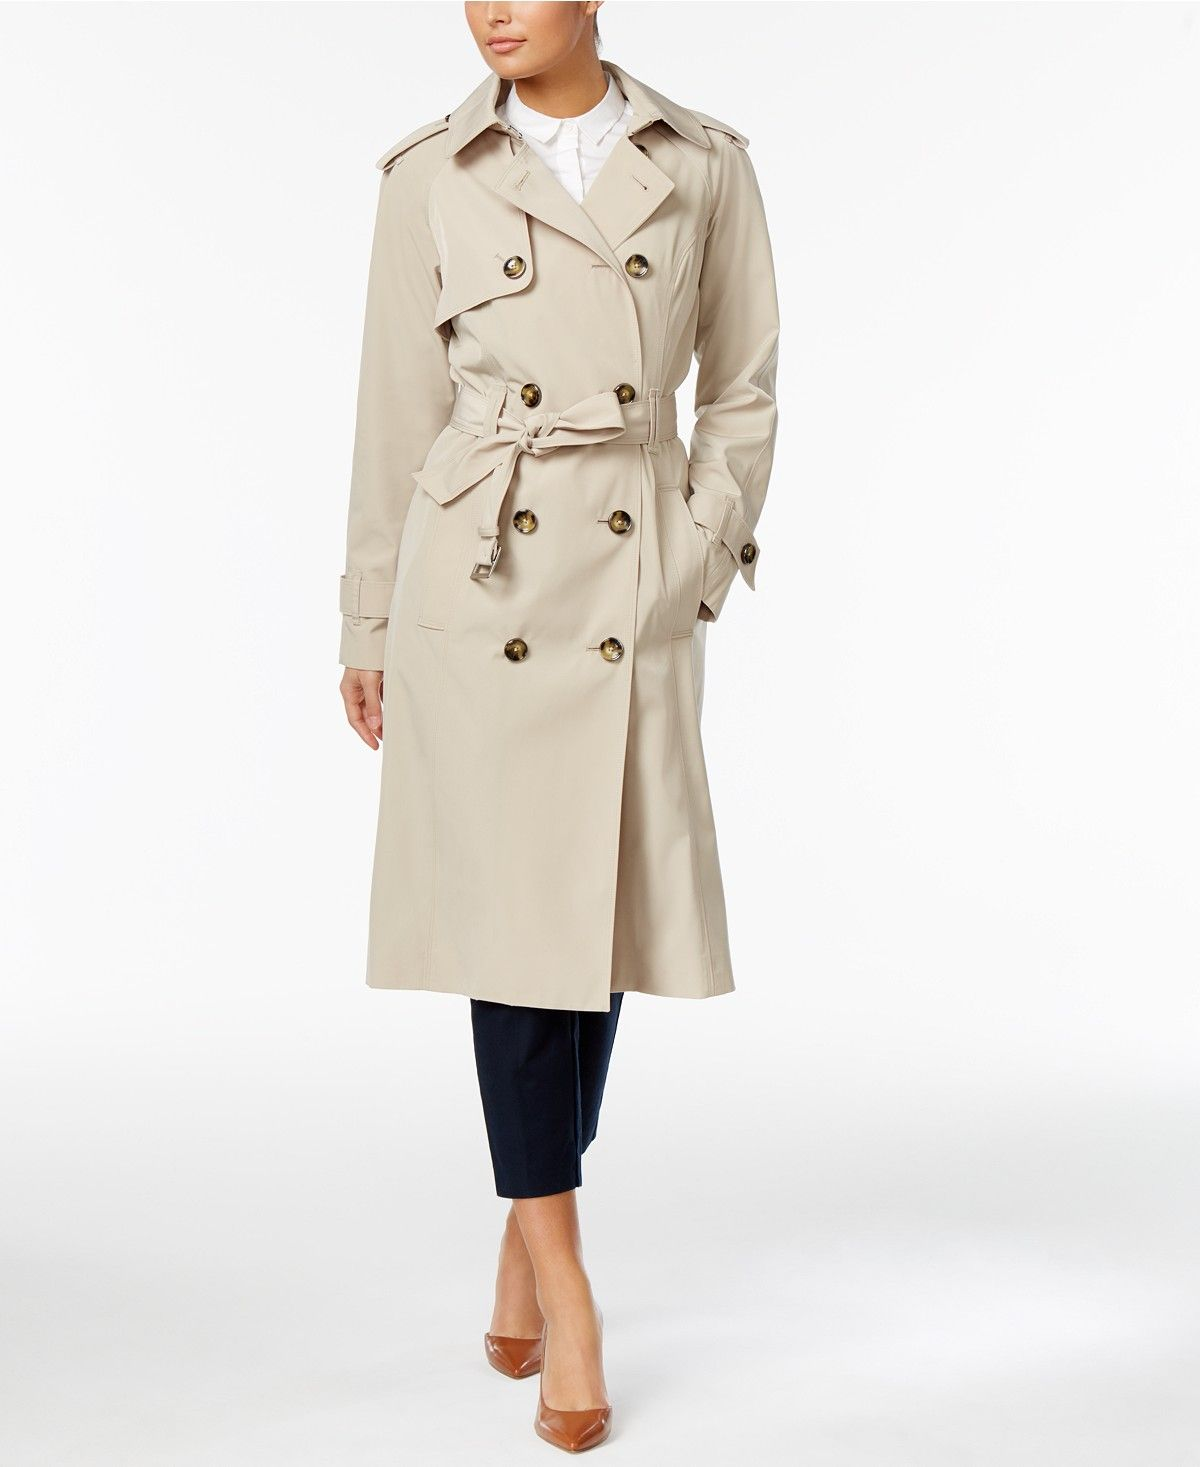 largest selection of 2019 fine quality official site London Fog Petite Belted Lightweight Trench Coat - Coats ...